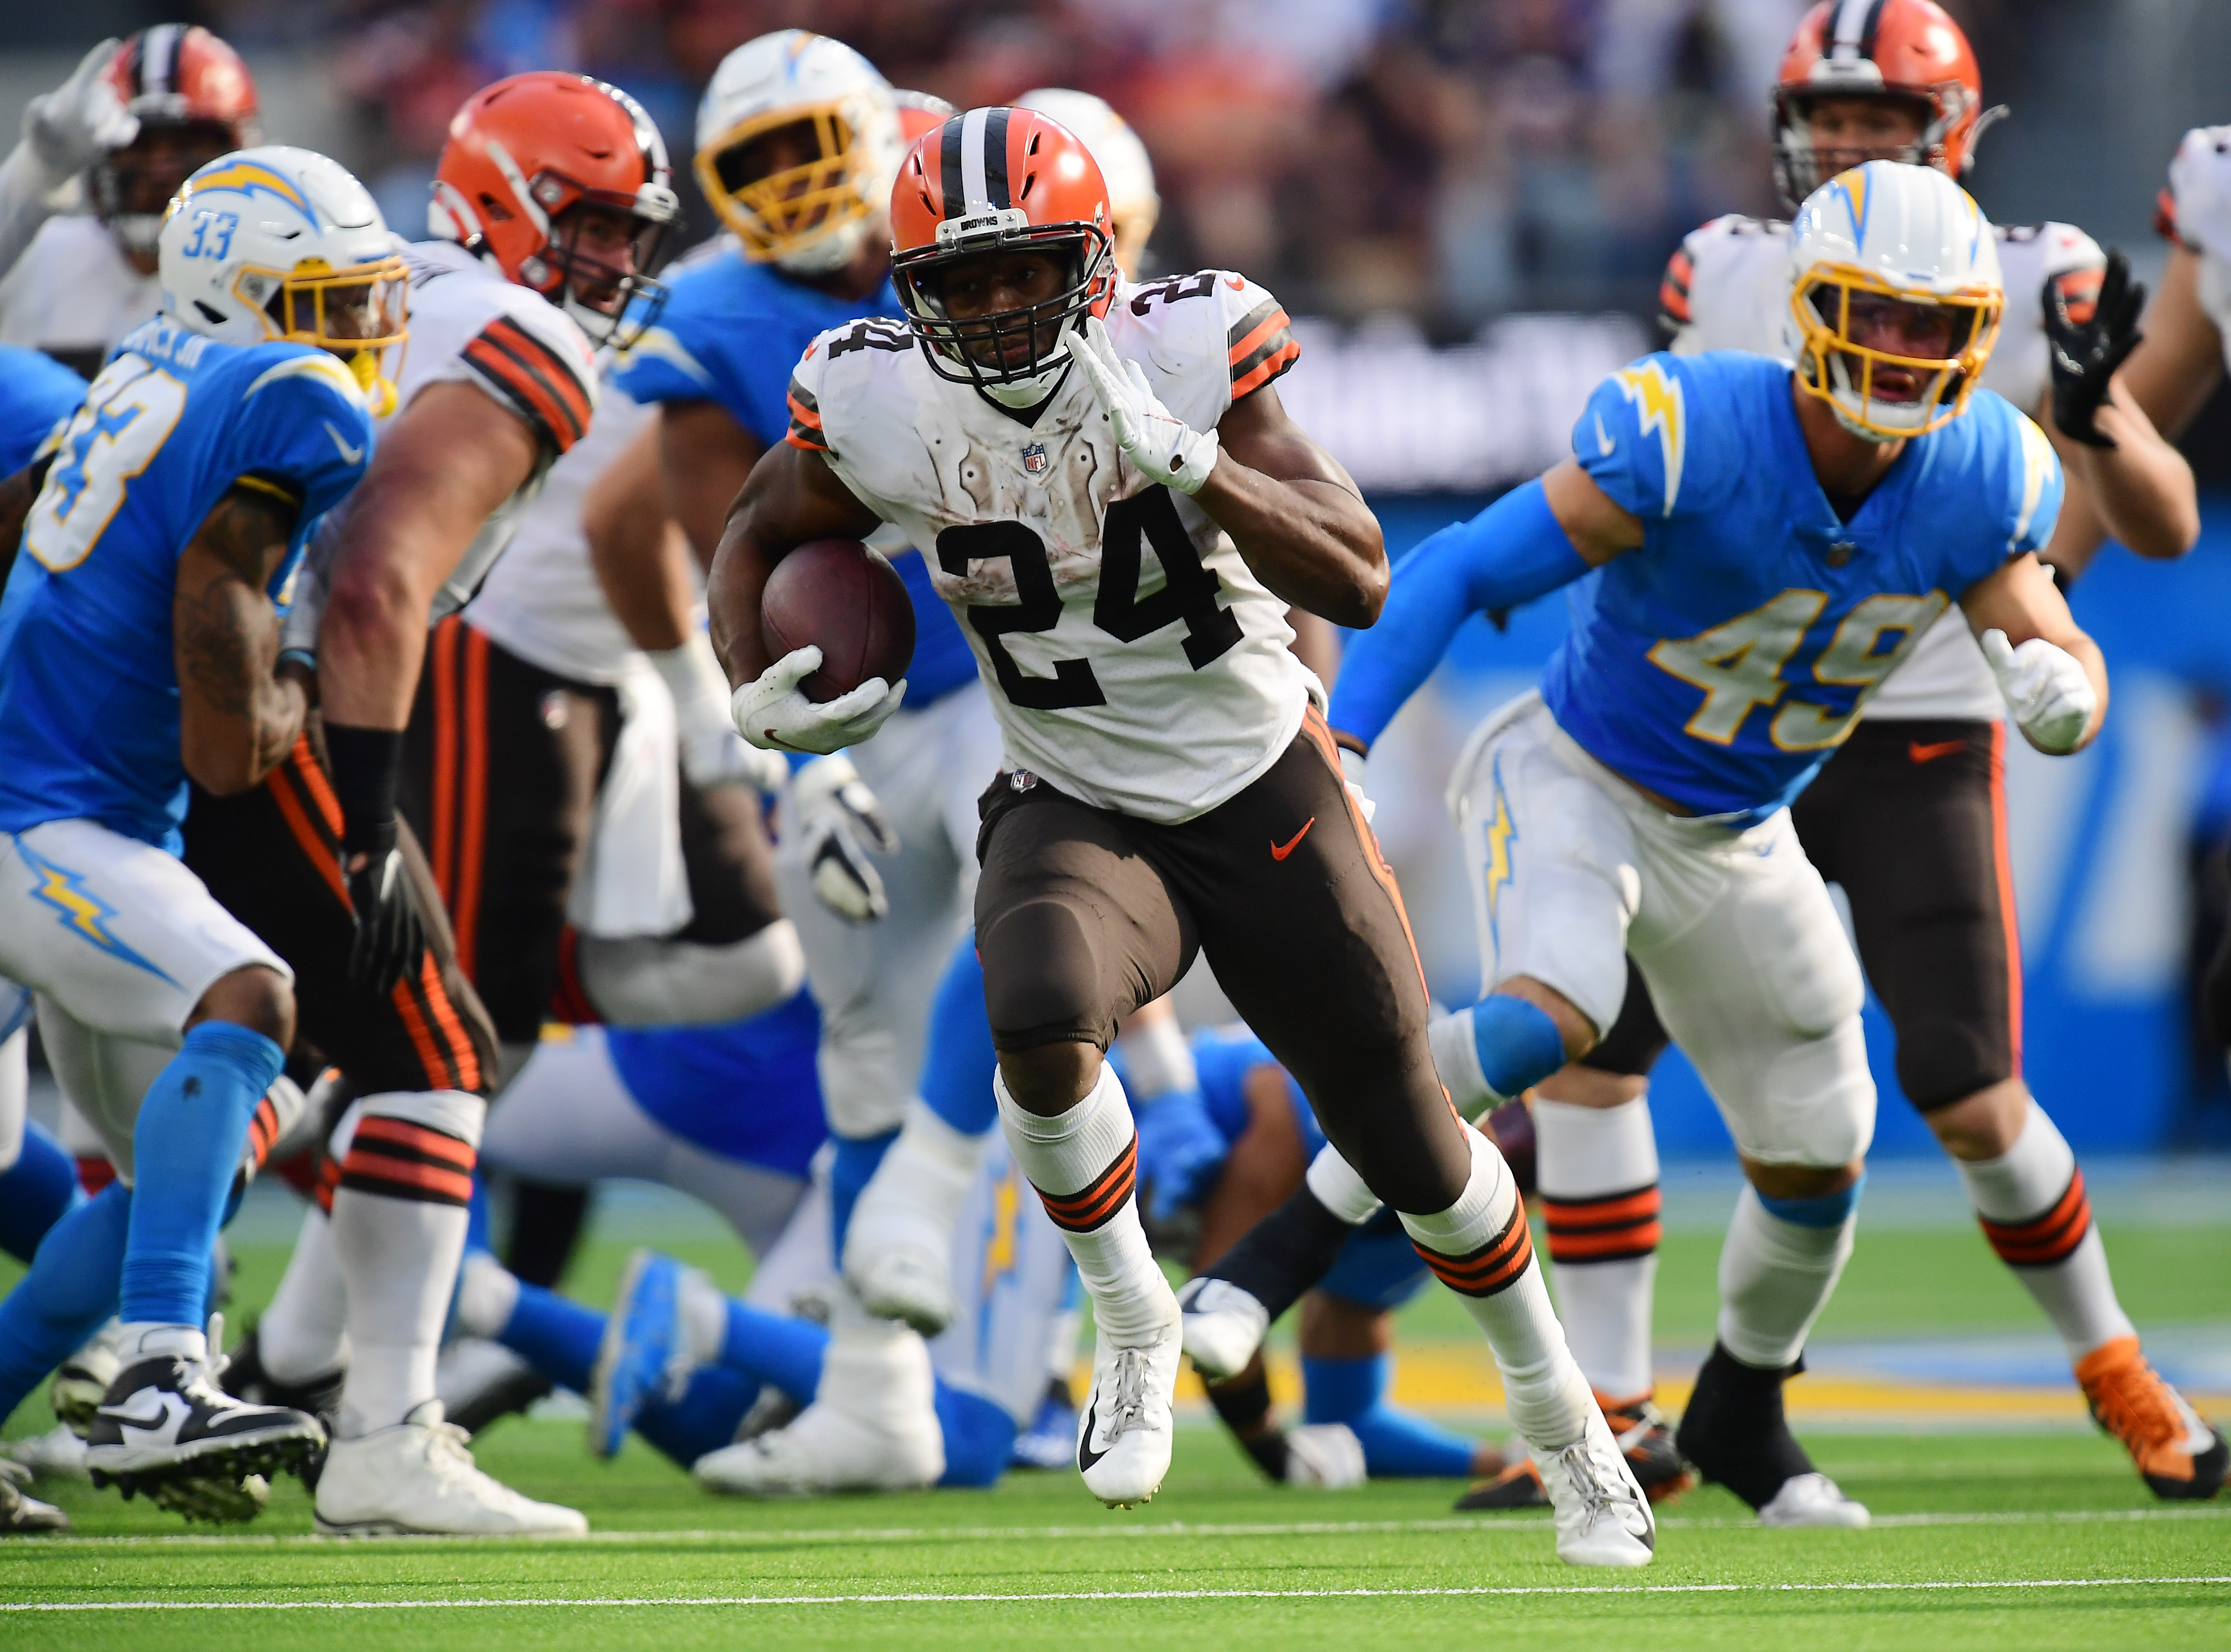 Cleveland Browns running back Nick Chubb (24) runs the ball against the Los Angeles Chargers during the second half at SoFi Stadium.